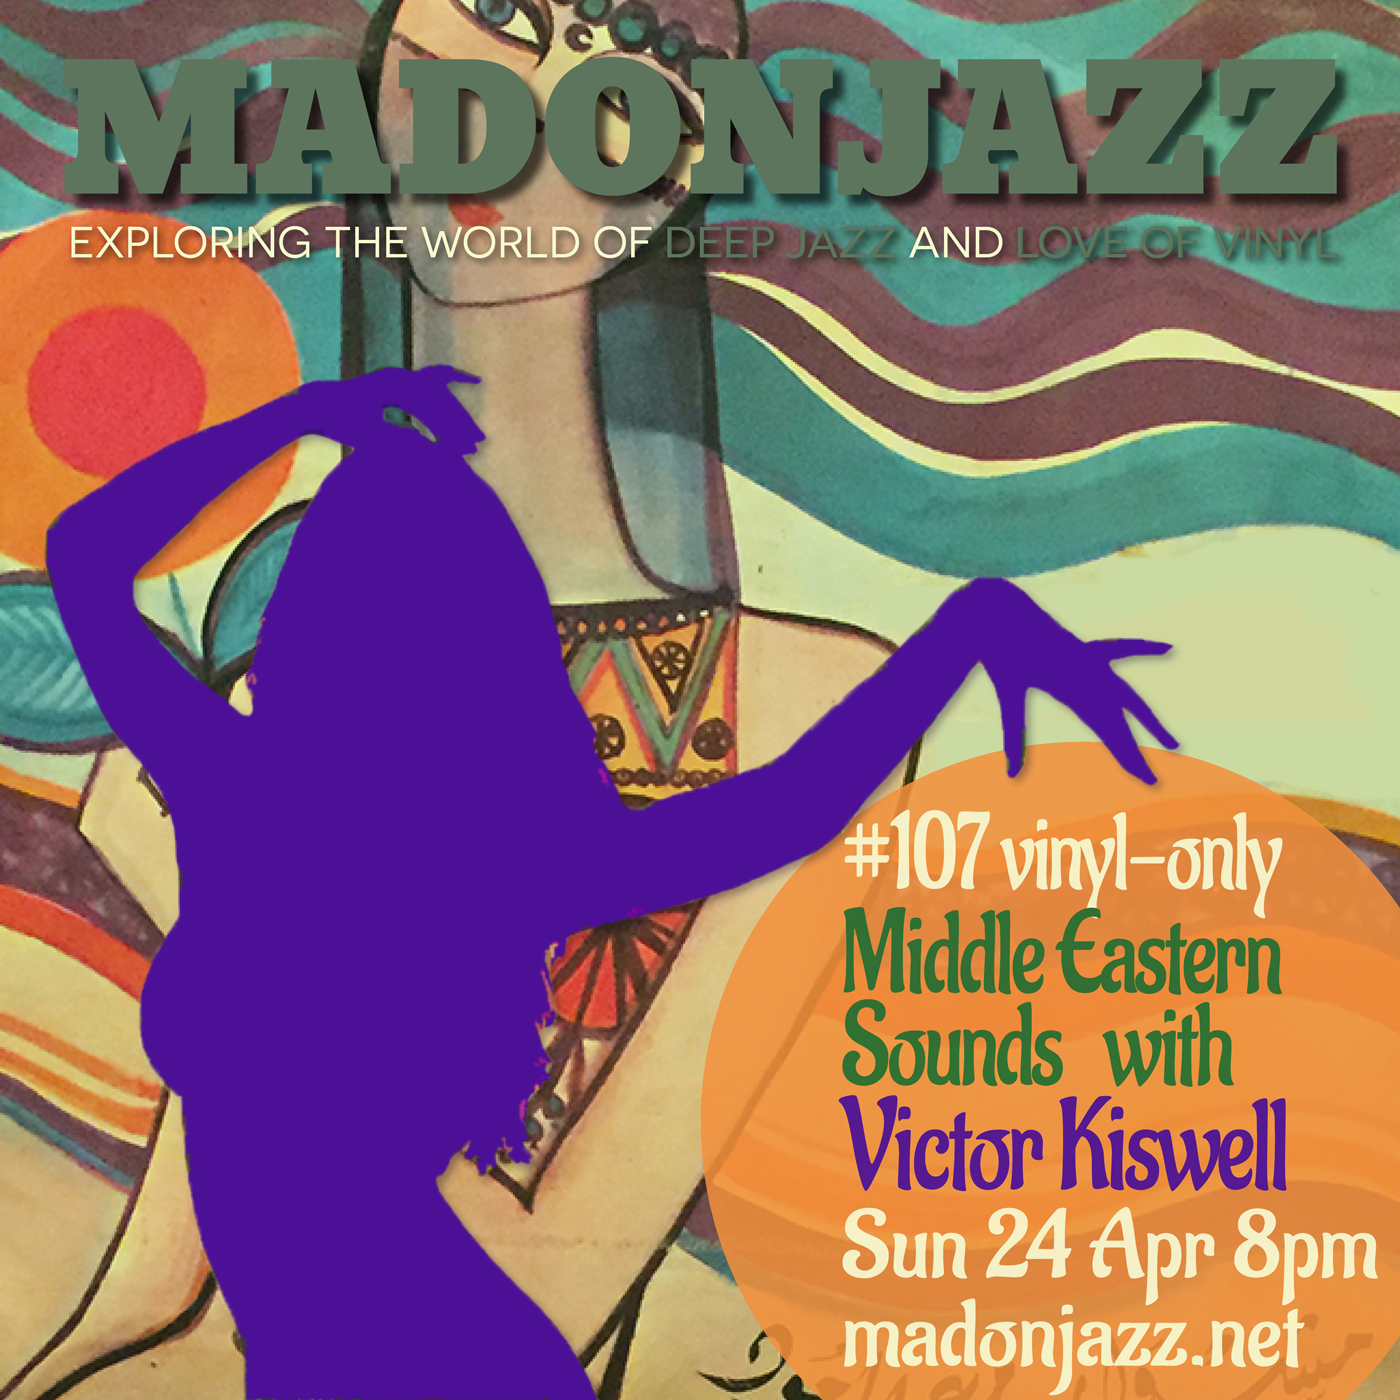 MADONJAZZ #107: Middle Eastern Sounds with Victor Kiswell